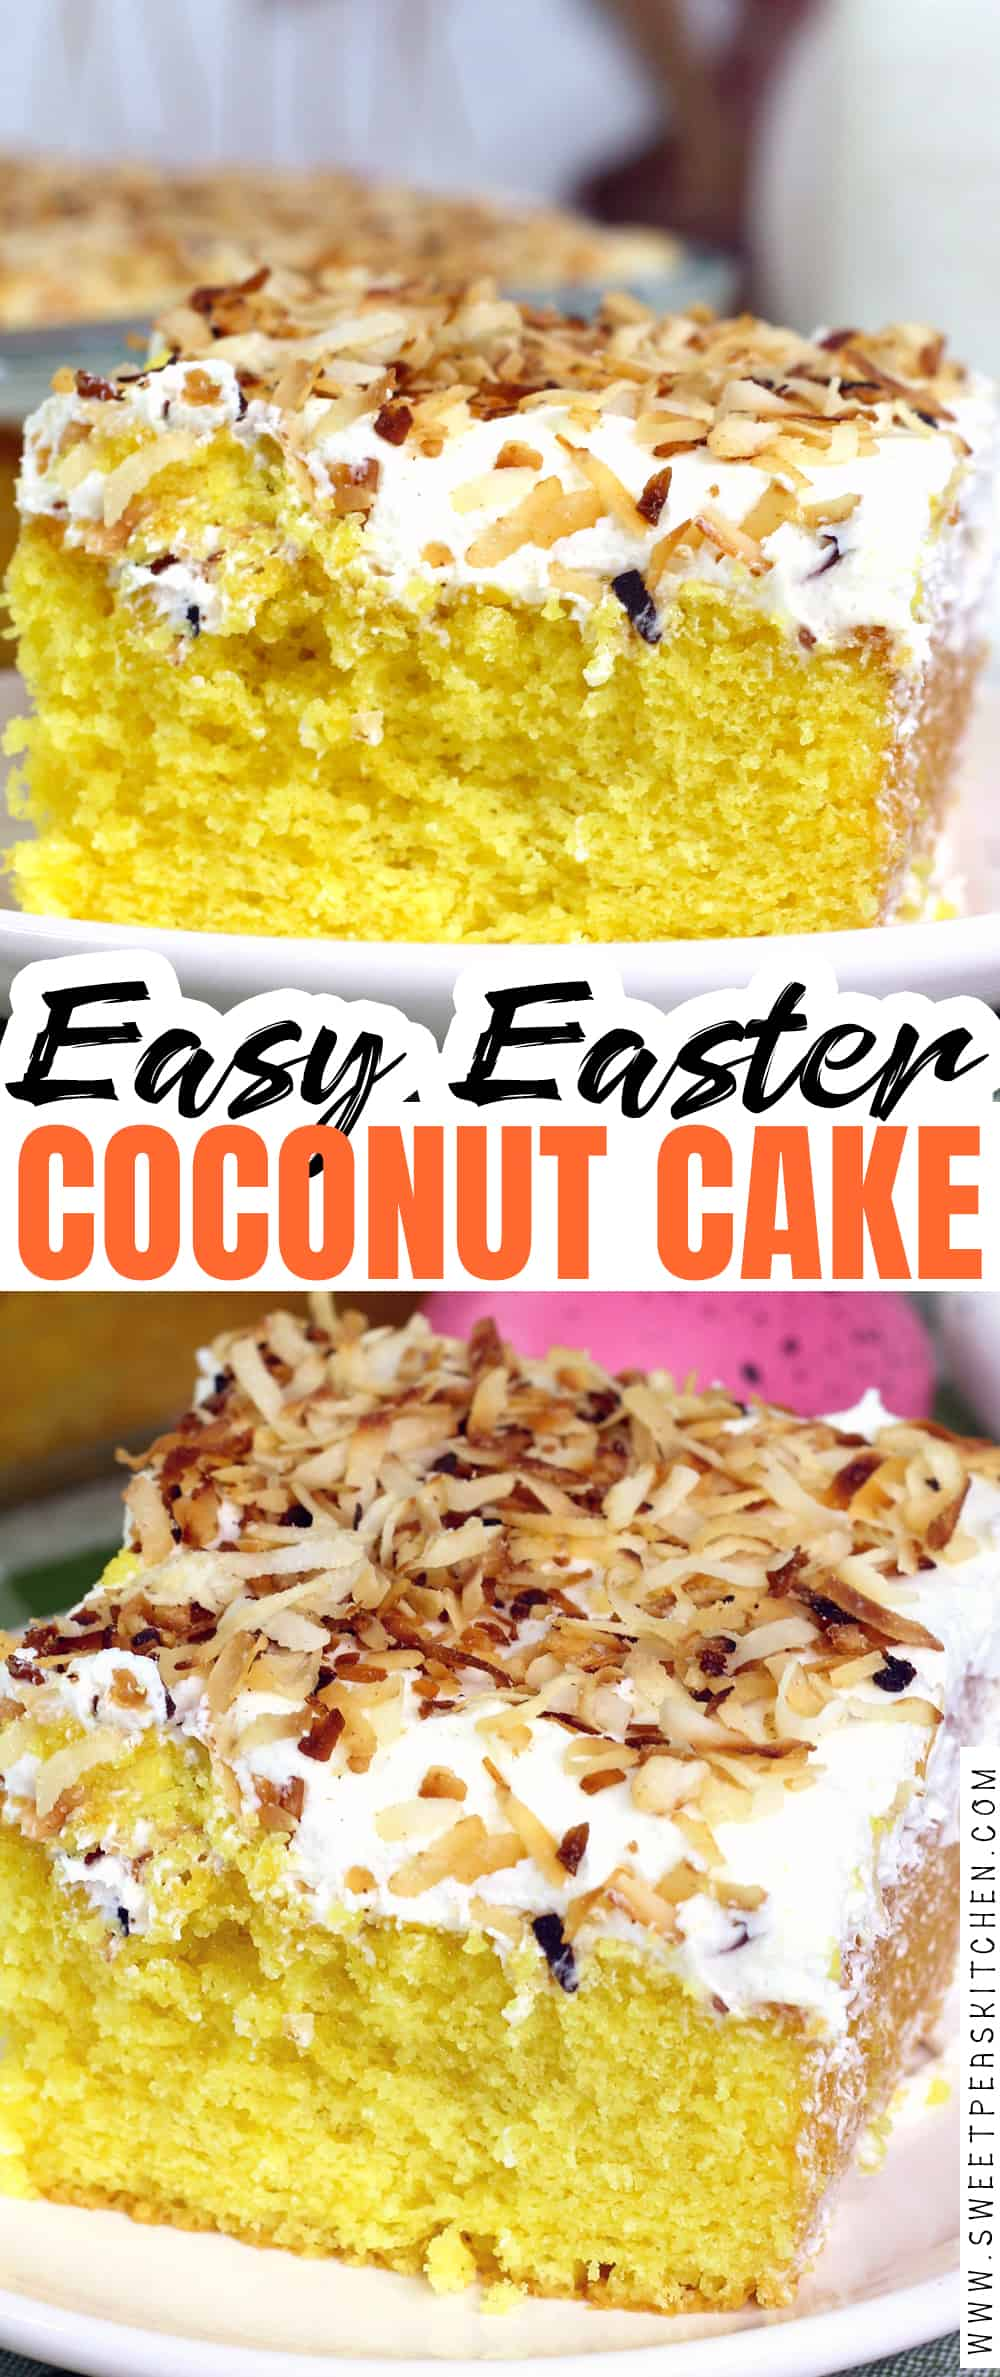 Easy Easter Coconut Cake Recipe